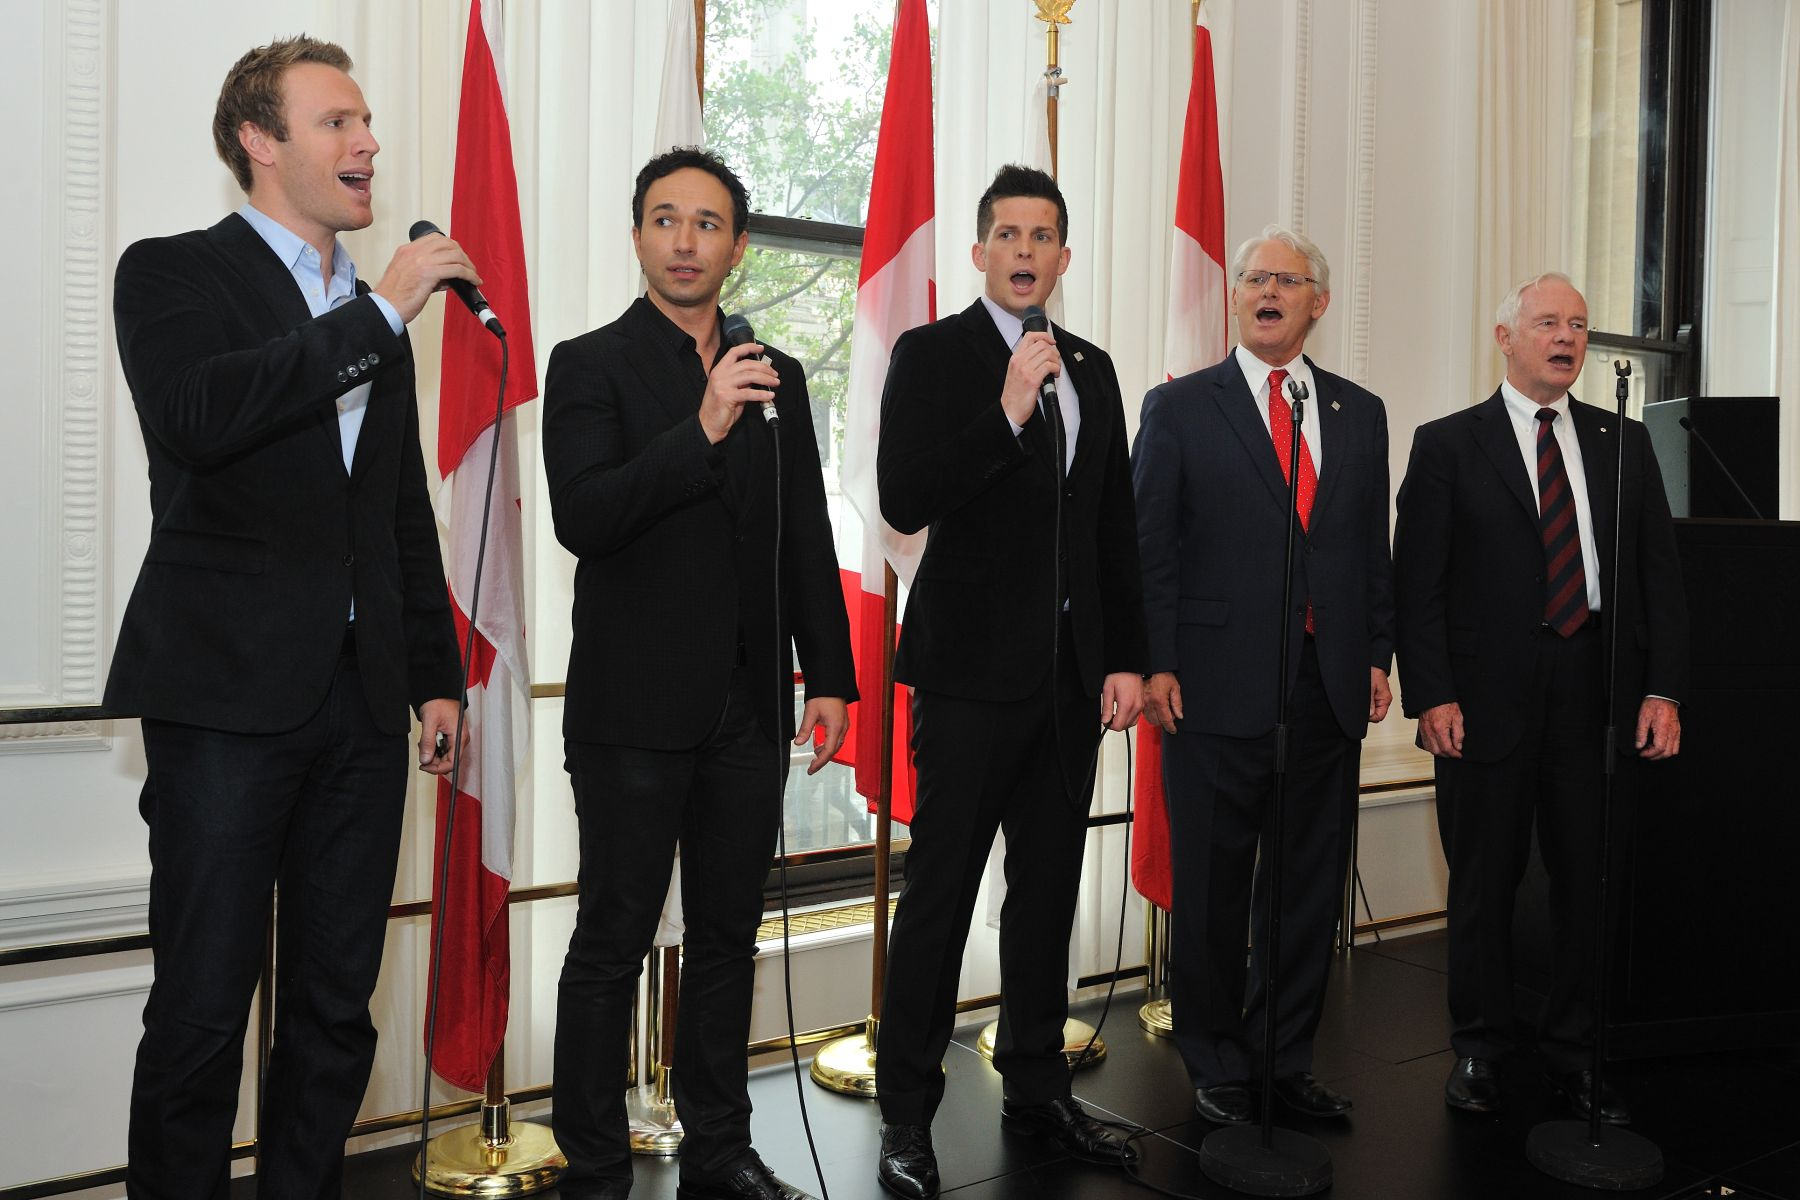 During the Big Jubilee Lunch with the Canadian community, His Excellency and Mr. Gordon Campbell, High Commissioner of Canada to the United Kingdom of Great Britain and Northern Ireland, joined three of the Canadian Tenors to sing God Save the Queen.